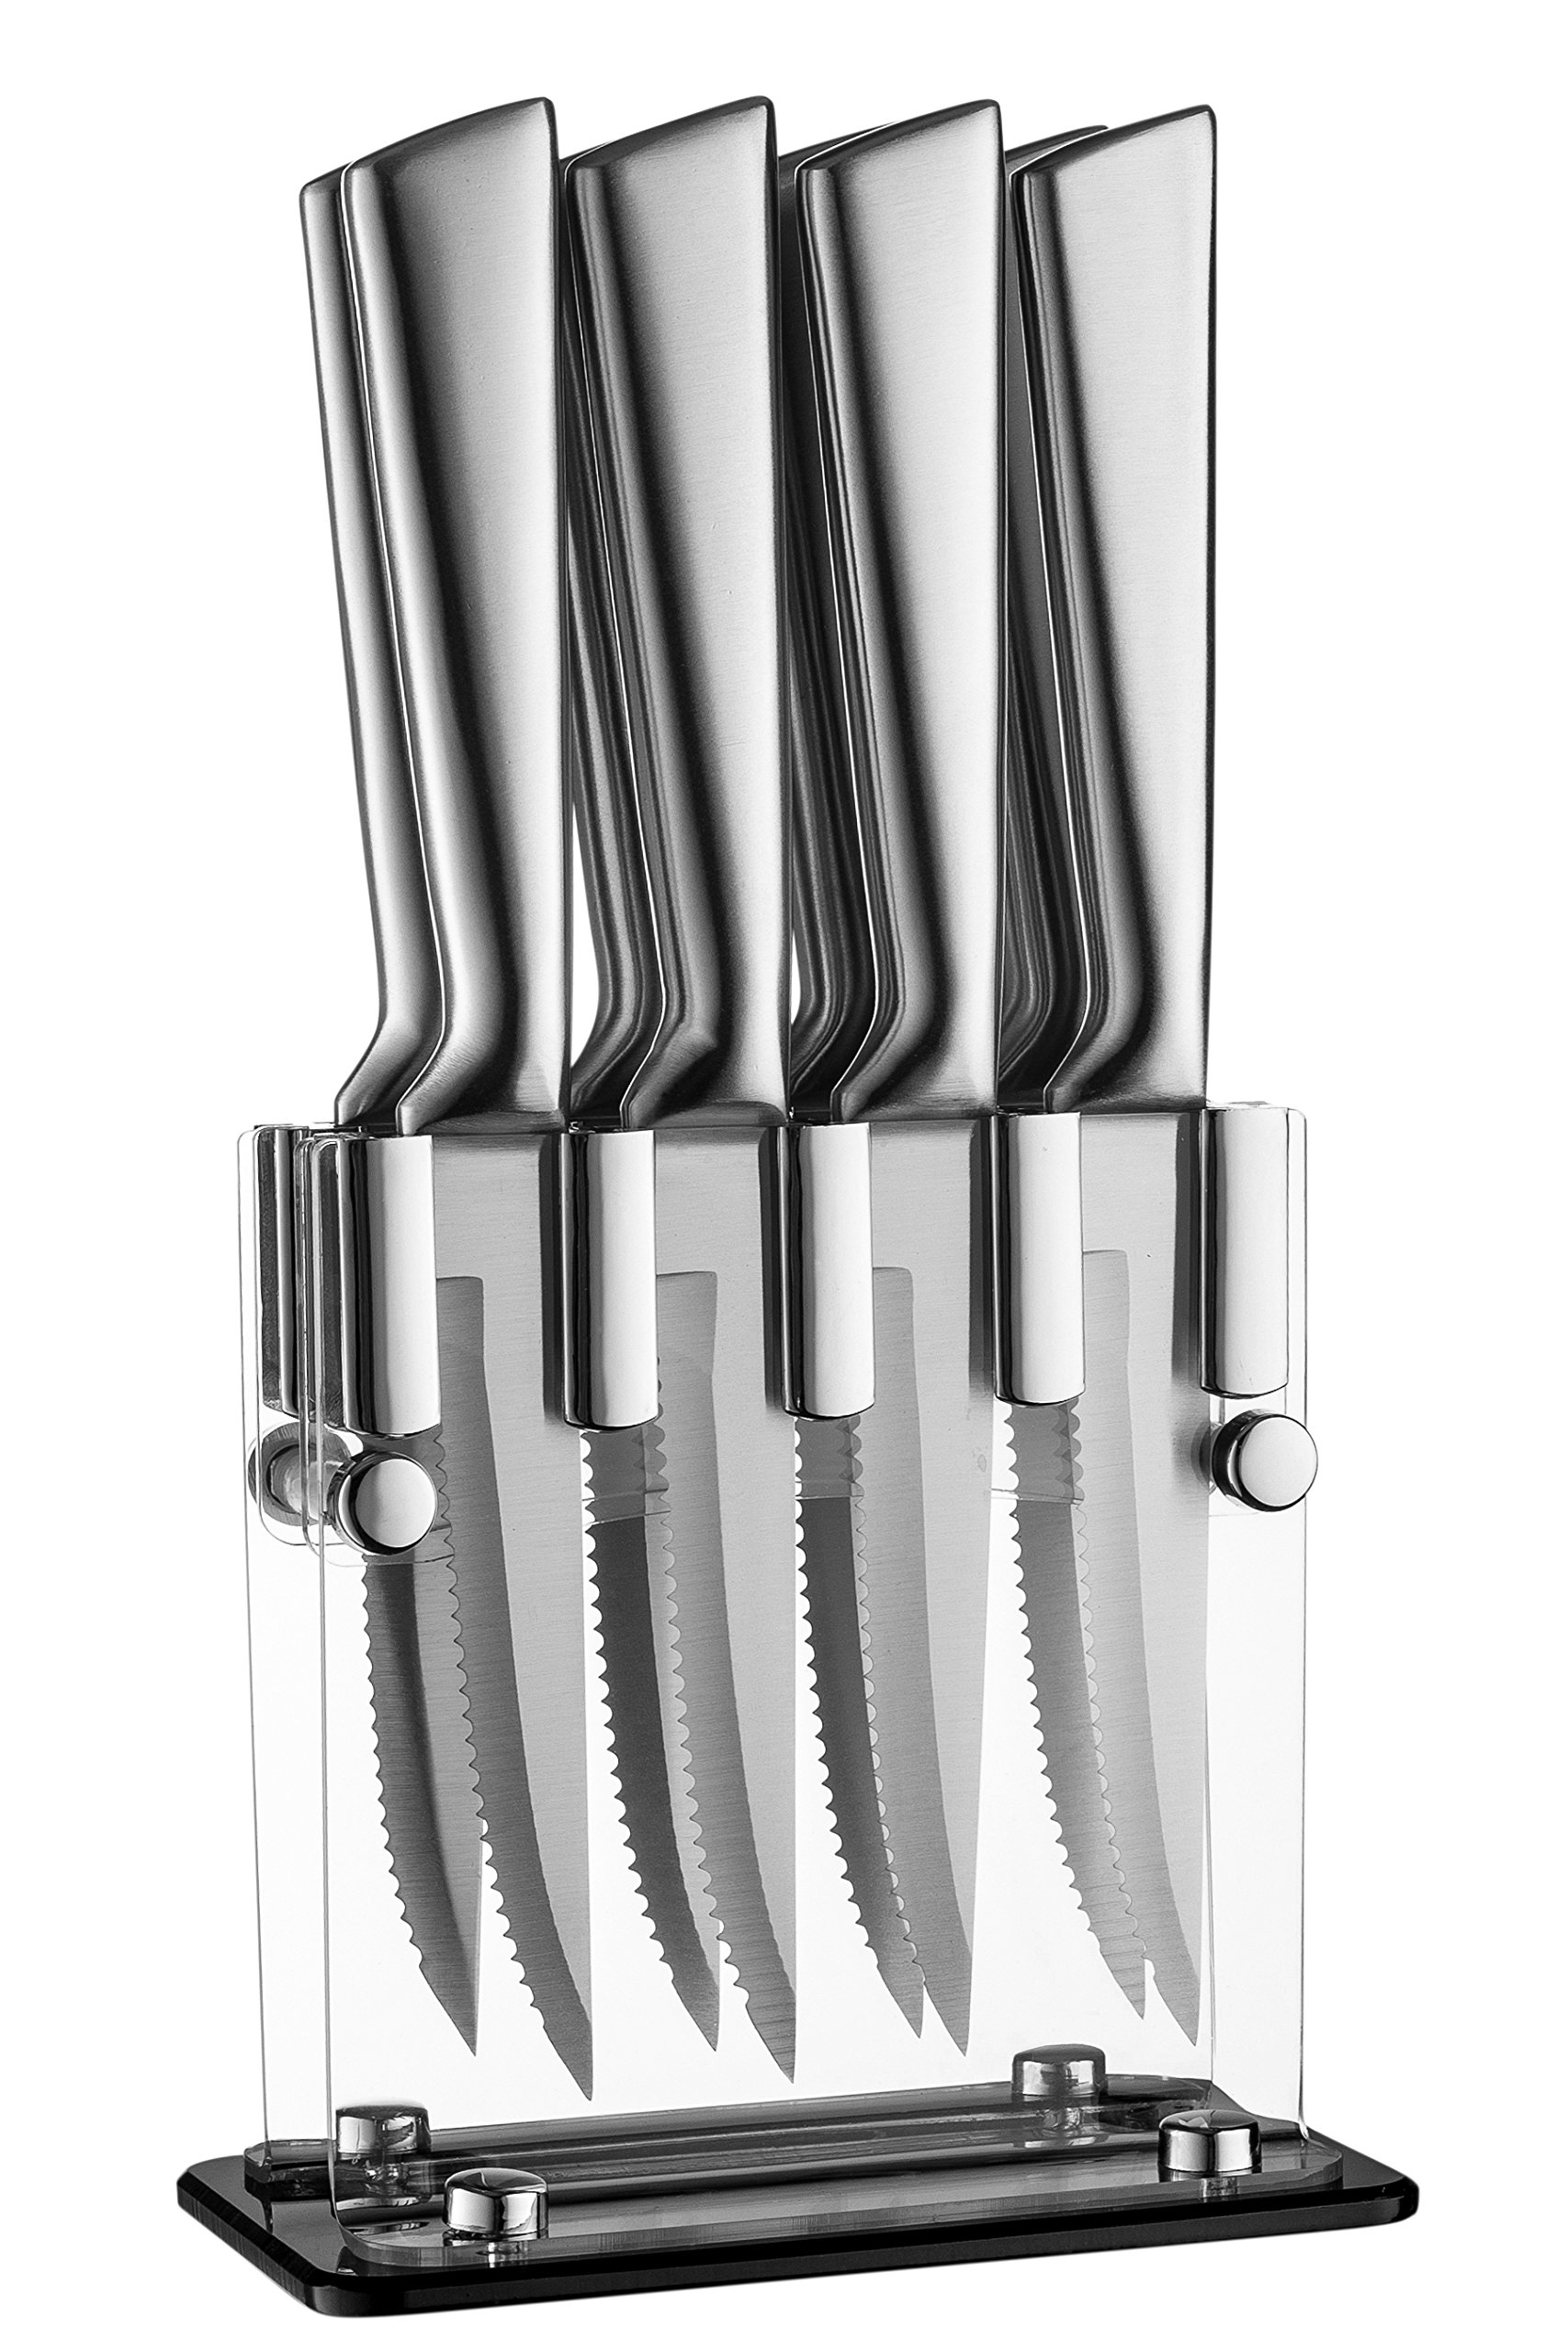 Stainless Steel Steak Knives With Block - High Quality Steak Knife Set Of 8 In Acrylic Stand